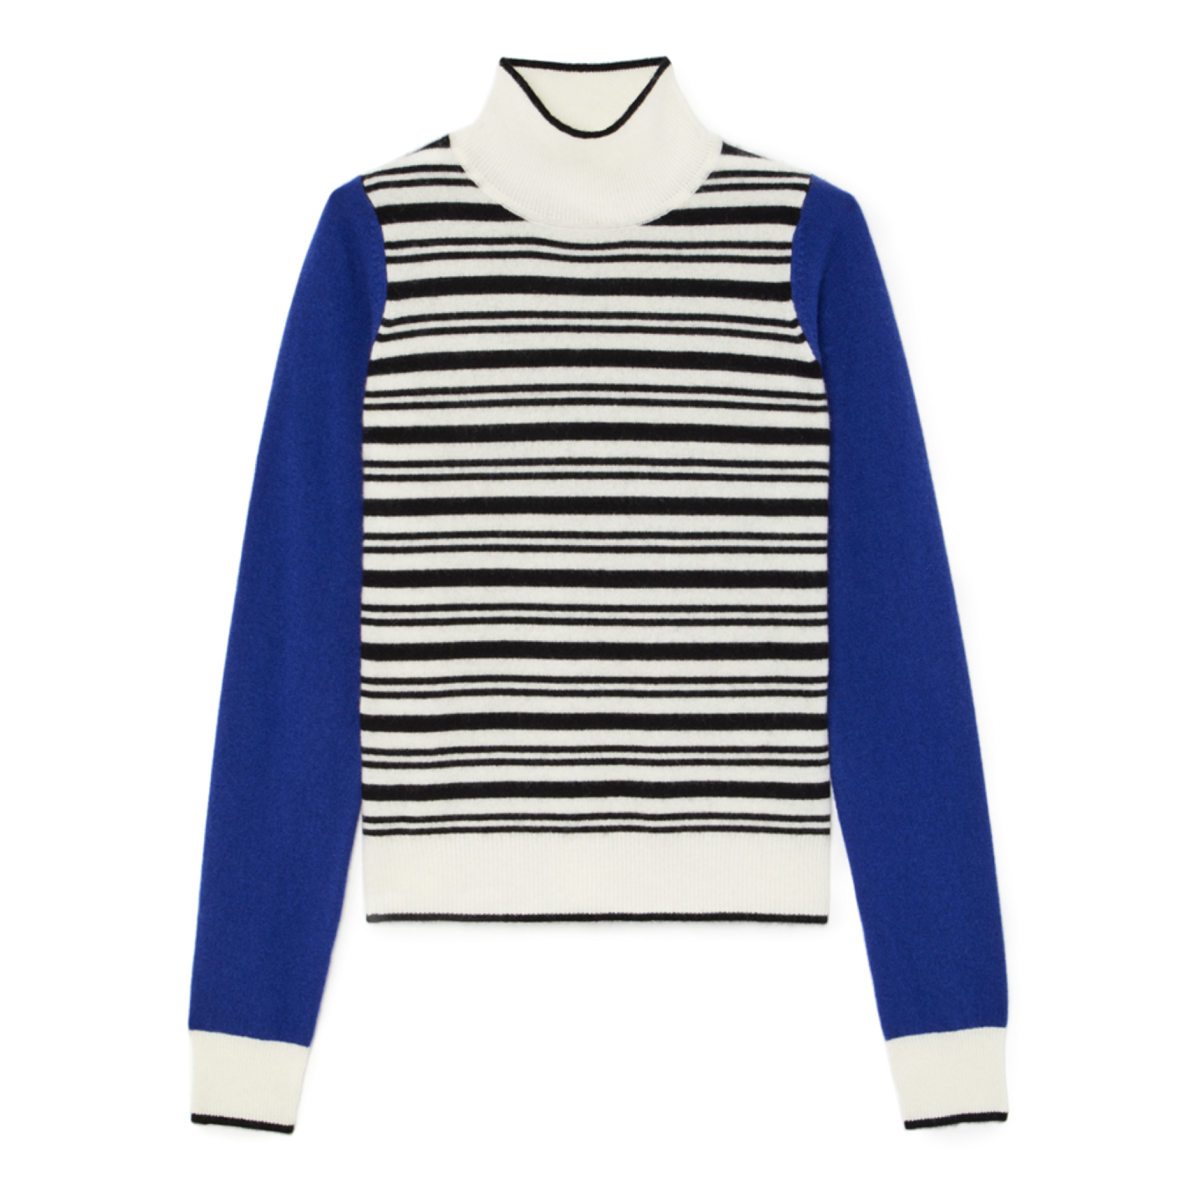 Madeleine Thompson Caerus Sweater